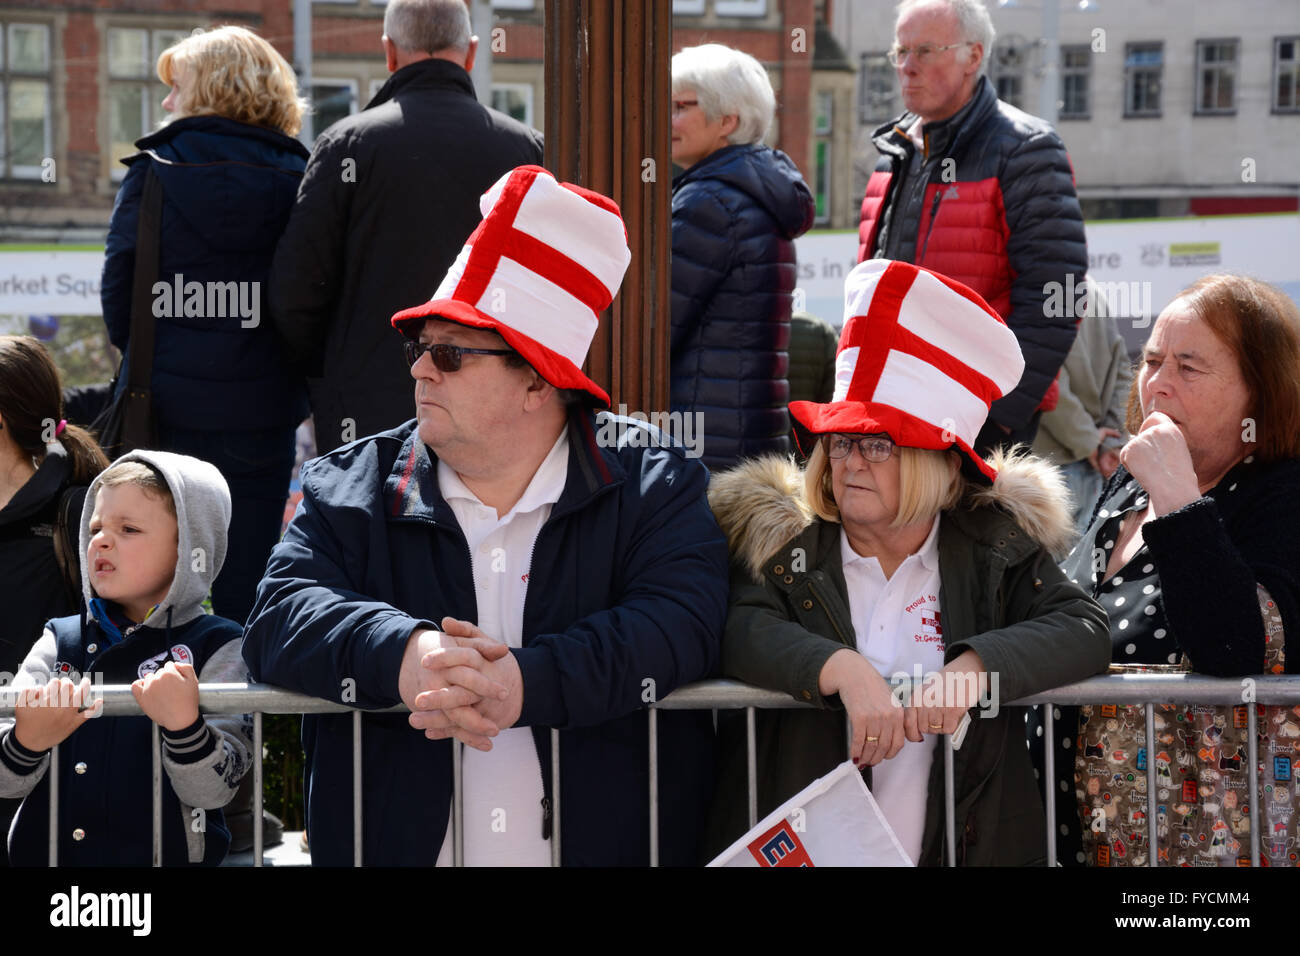 St.George's Day supporters in hats - Stock Image